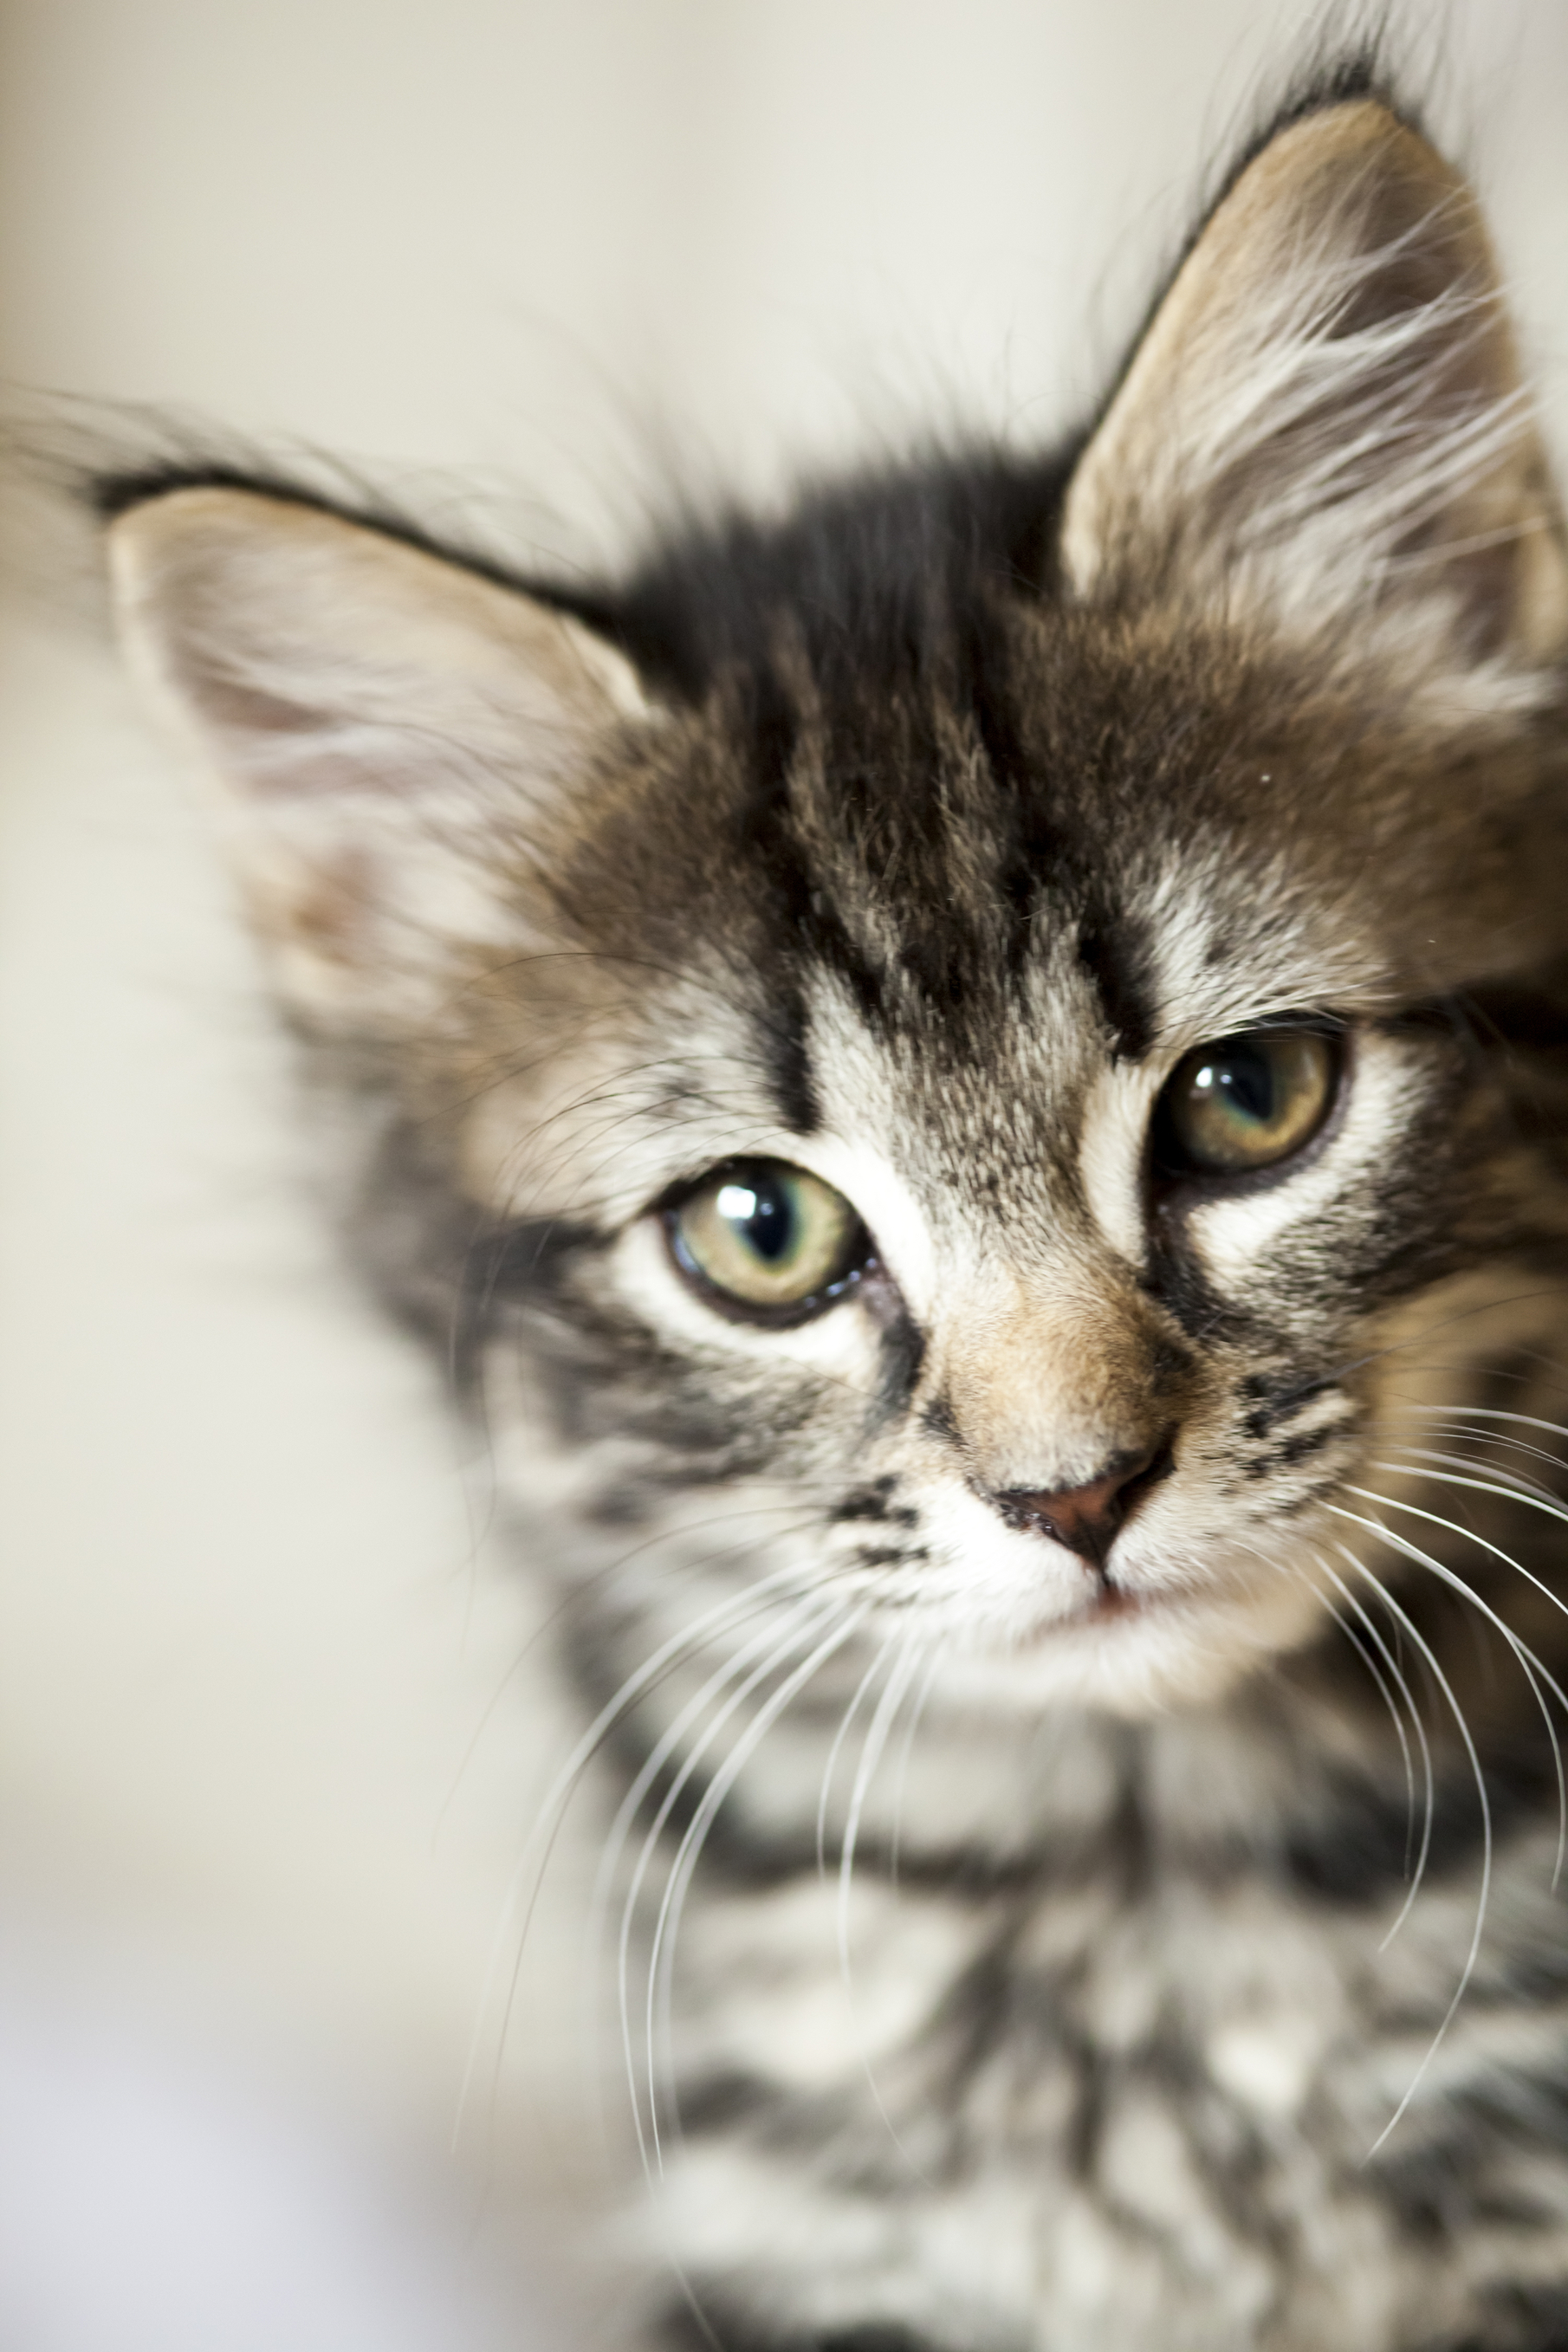 Cute little kitten looking straight at camera. Shallow DOF, natural light